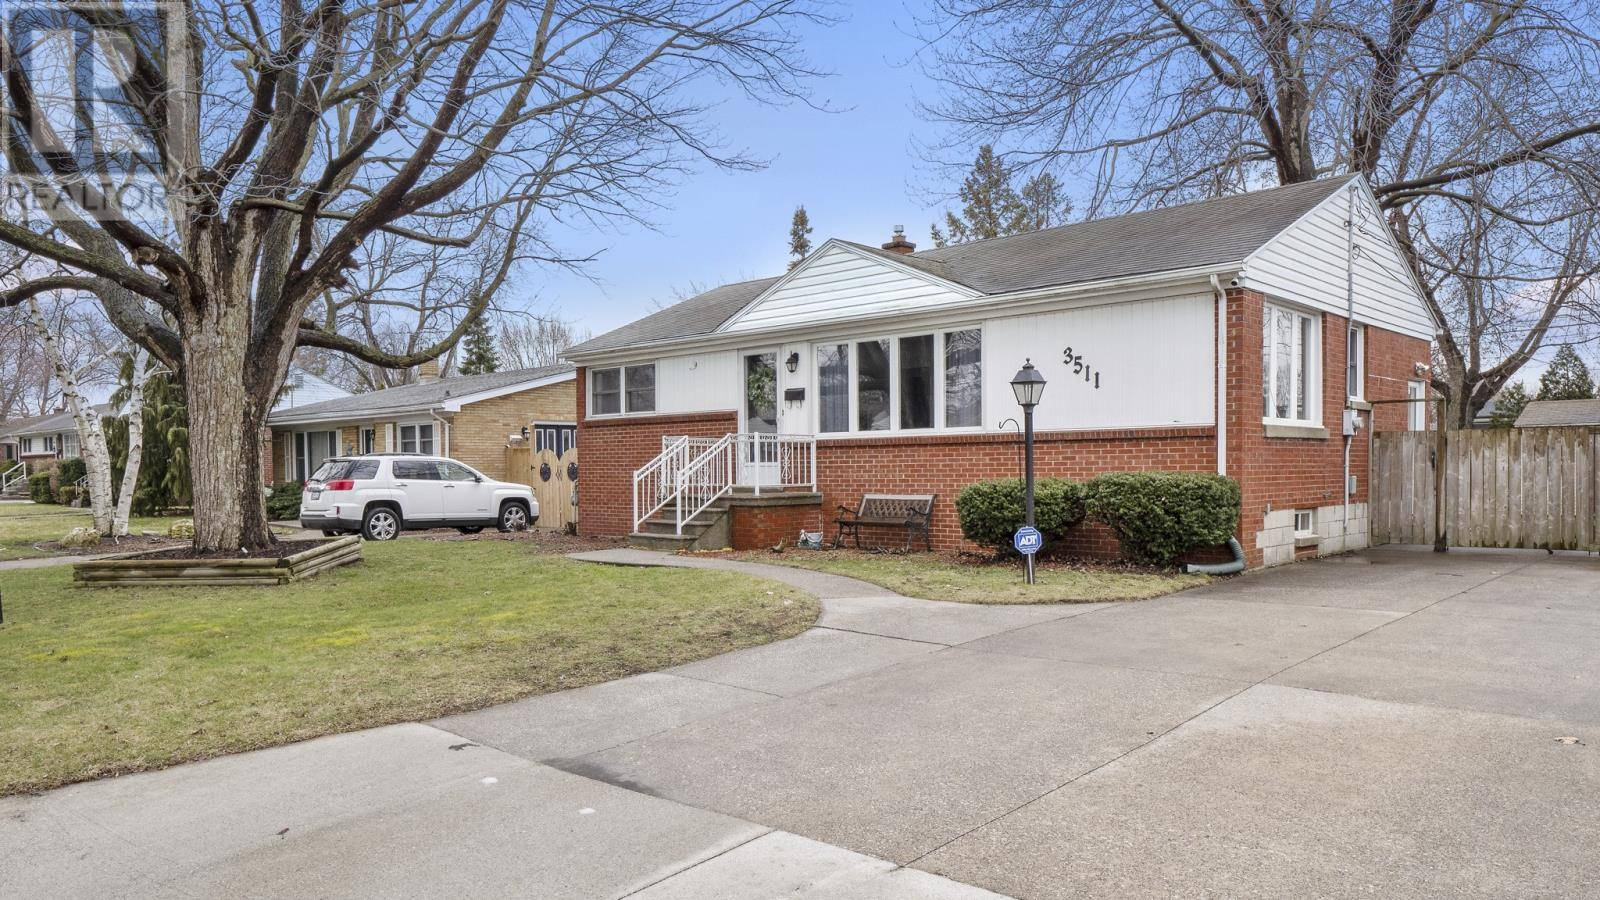 House for sale at 3511 Woodland Ave Windsor Ontario - MLS: 20003644